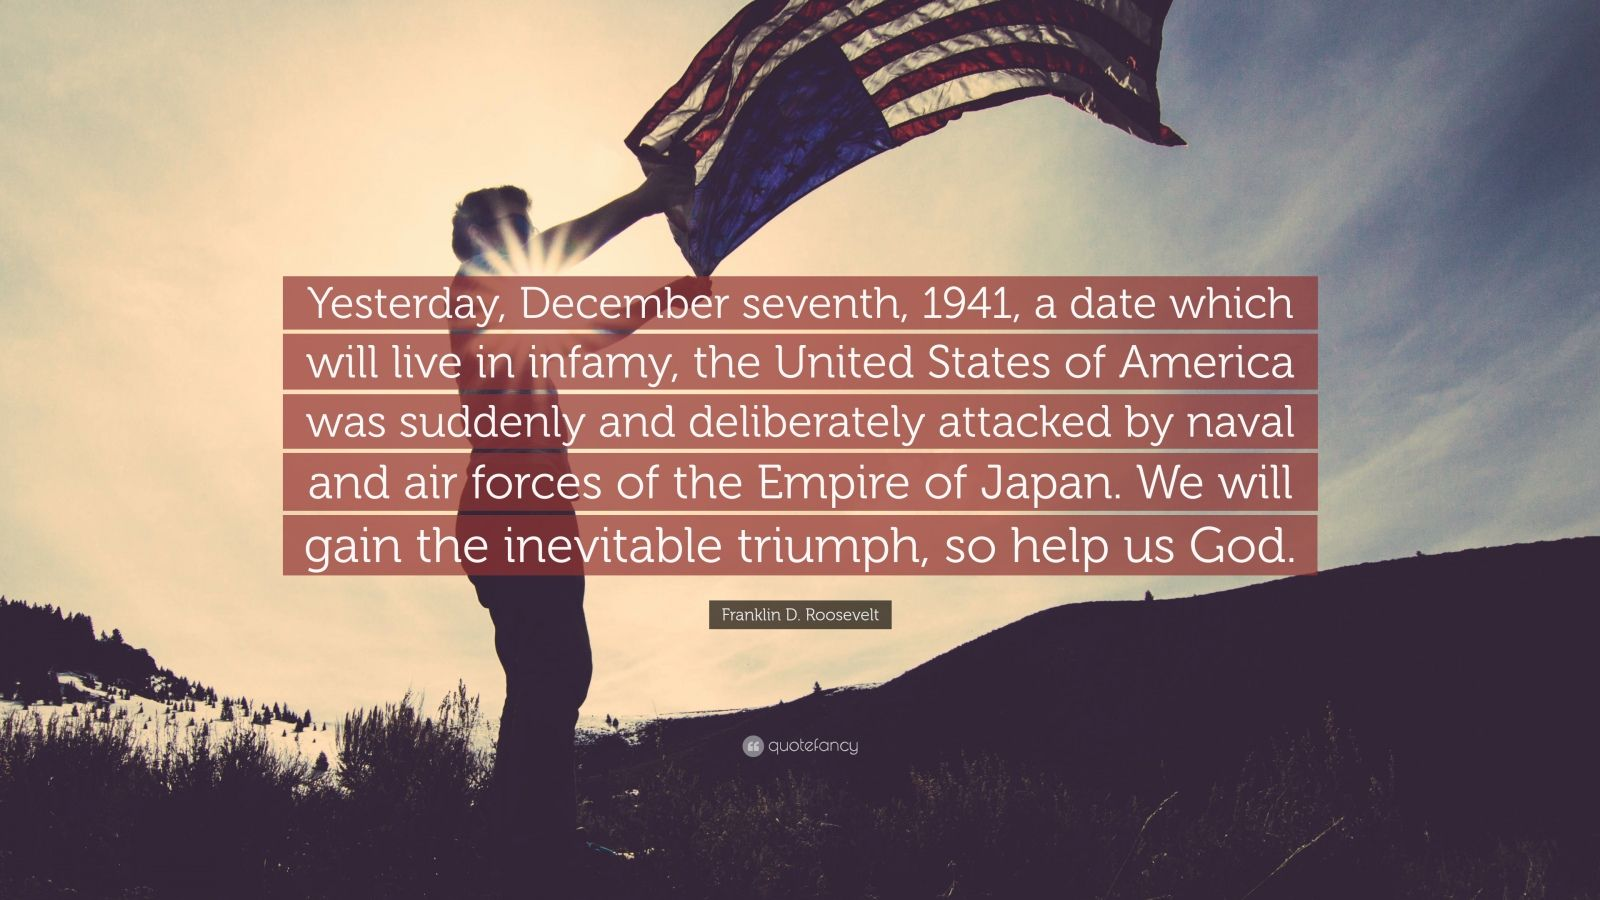 "Franklin D. Roosevelt Quote: ""Yesterday, December seventh, 1941, a date which will live in infamy, the United States of America was suddenly and deliberately attacked by naval and air forces of the Empire of Japan. We will gain the inevitable triumph, so help us God."""